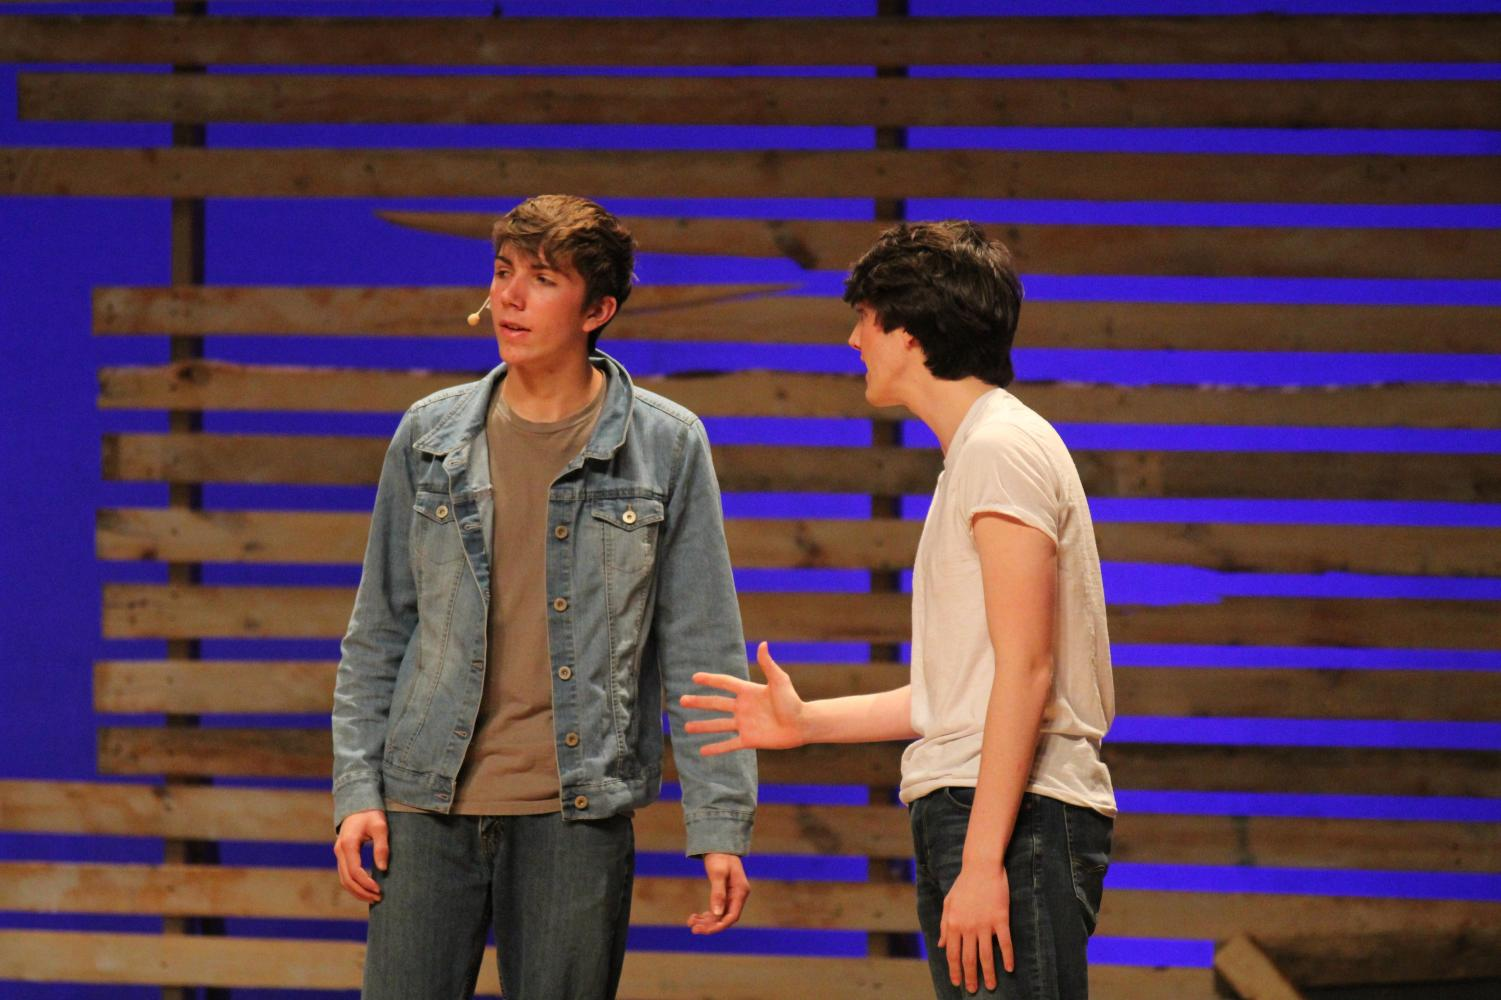 Ponyboy, played by Andrew Page. talks with his good friend Johnny, played by Colin Pendergrast, about the building tension between the